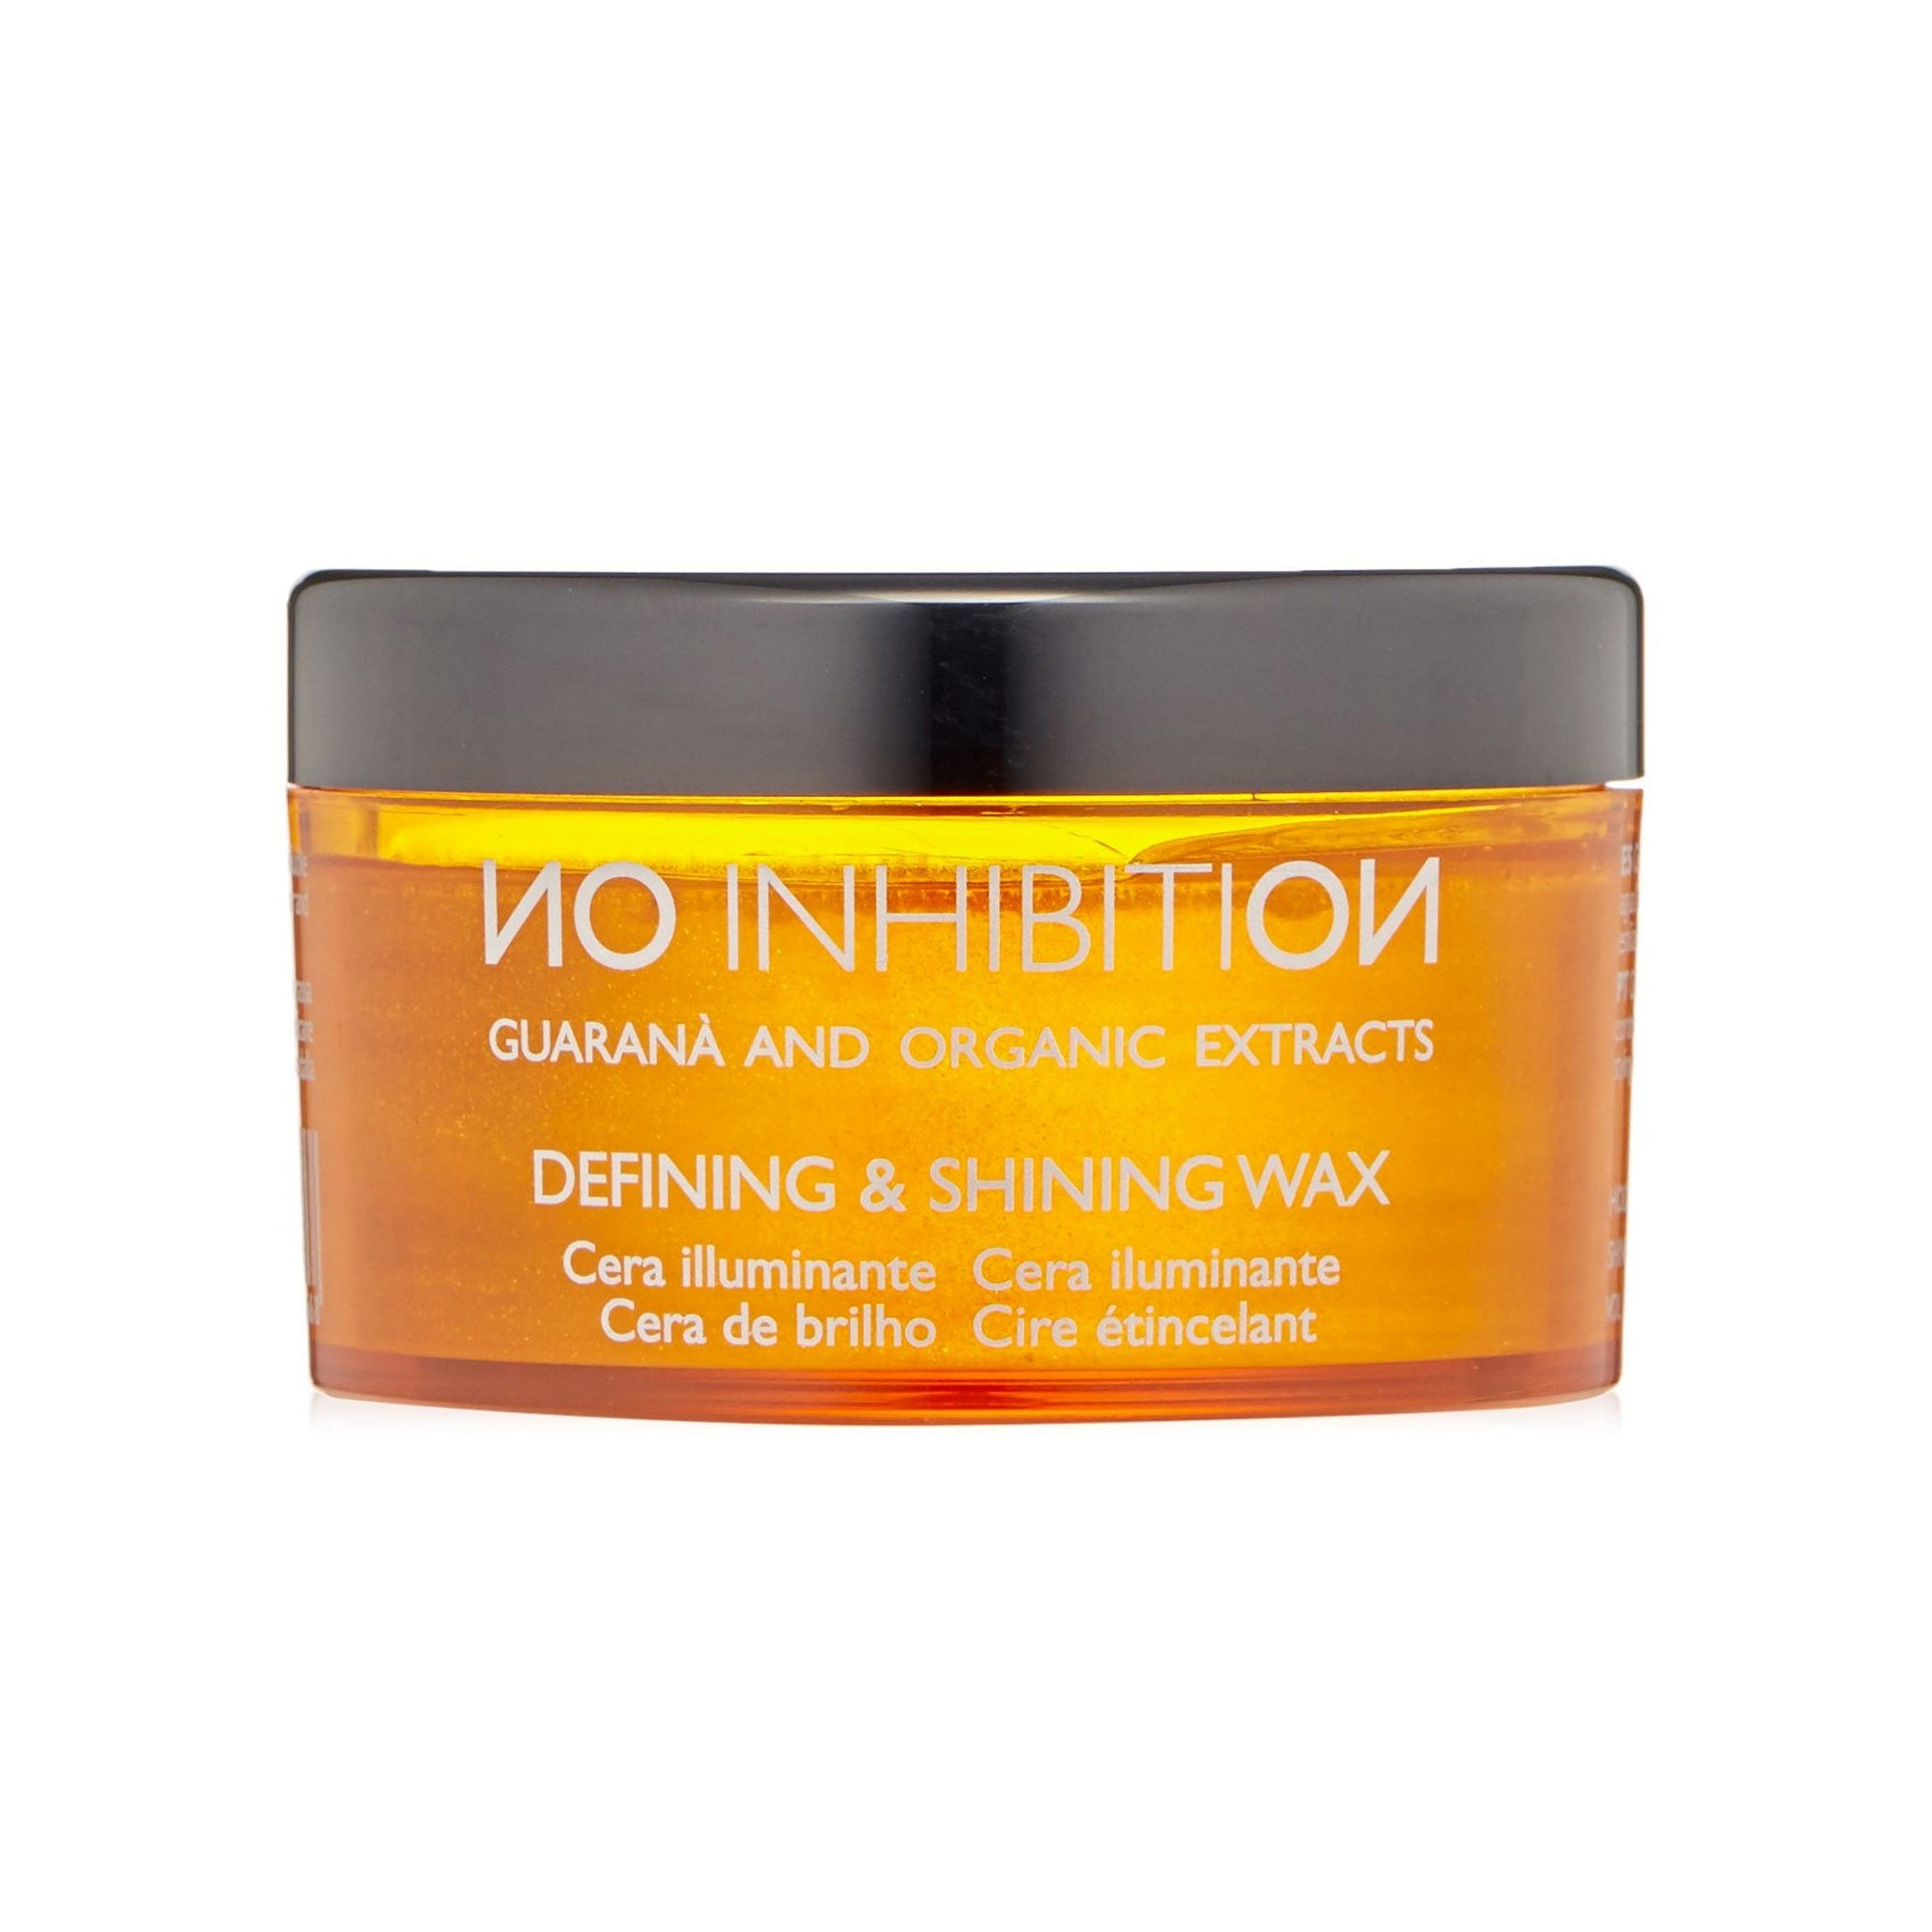 No Inhibition Defining & Shining Wax 75ml